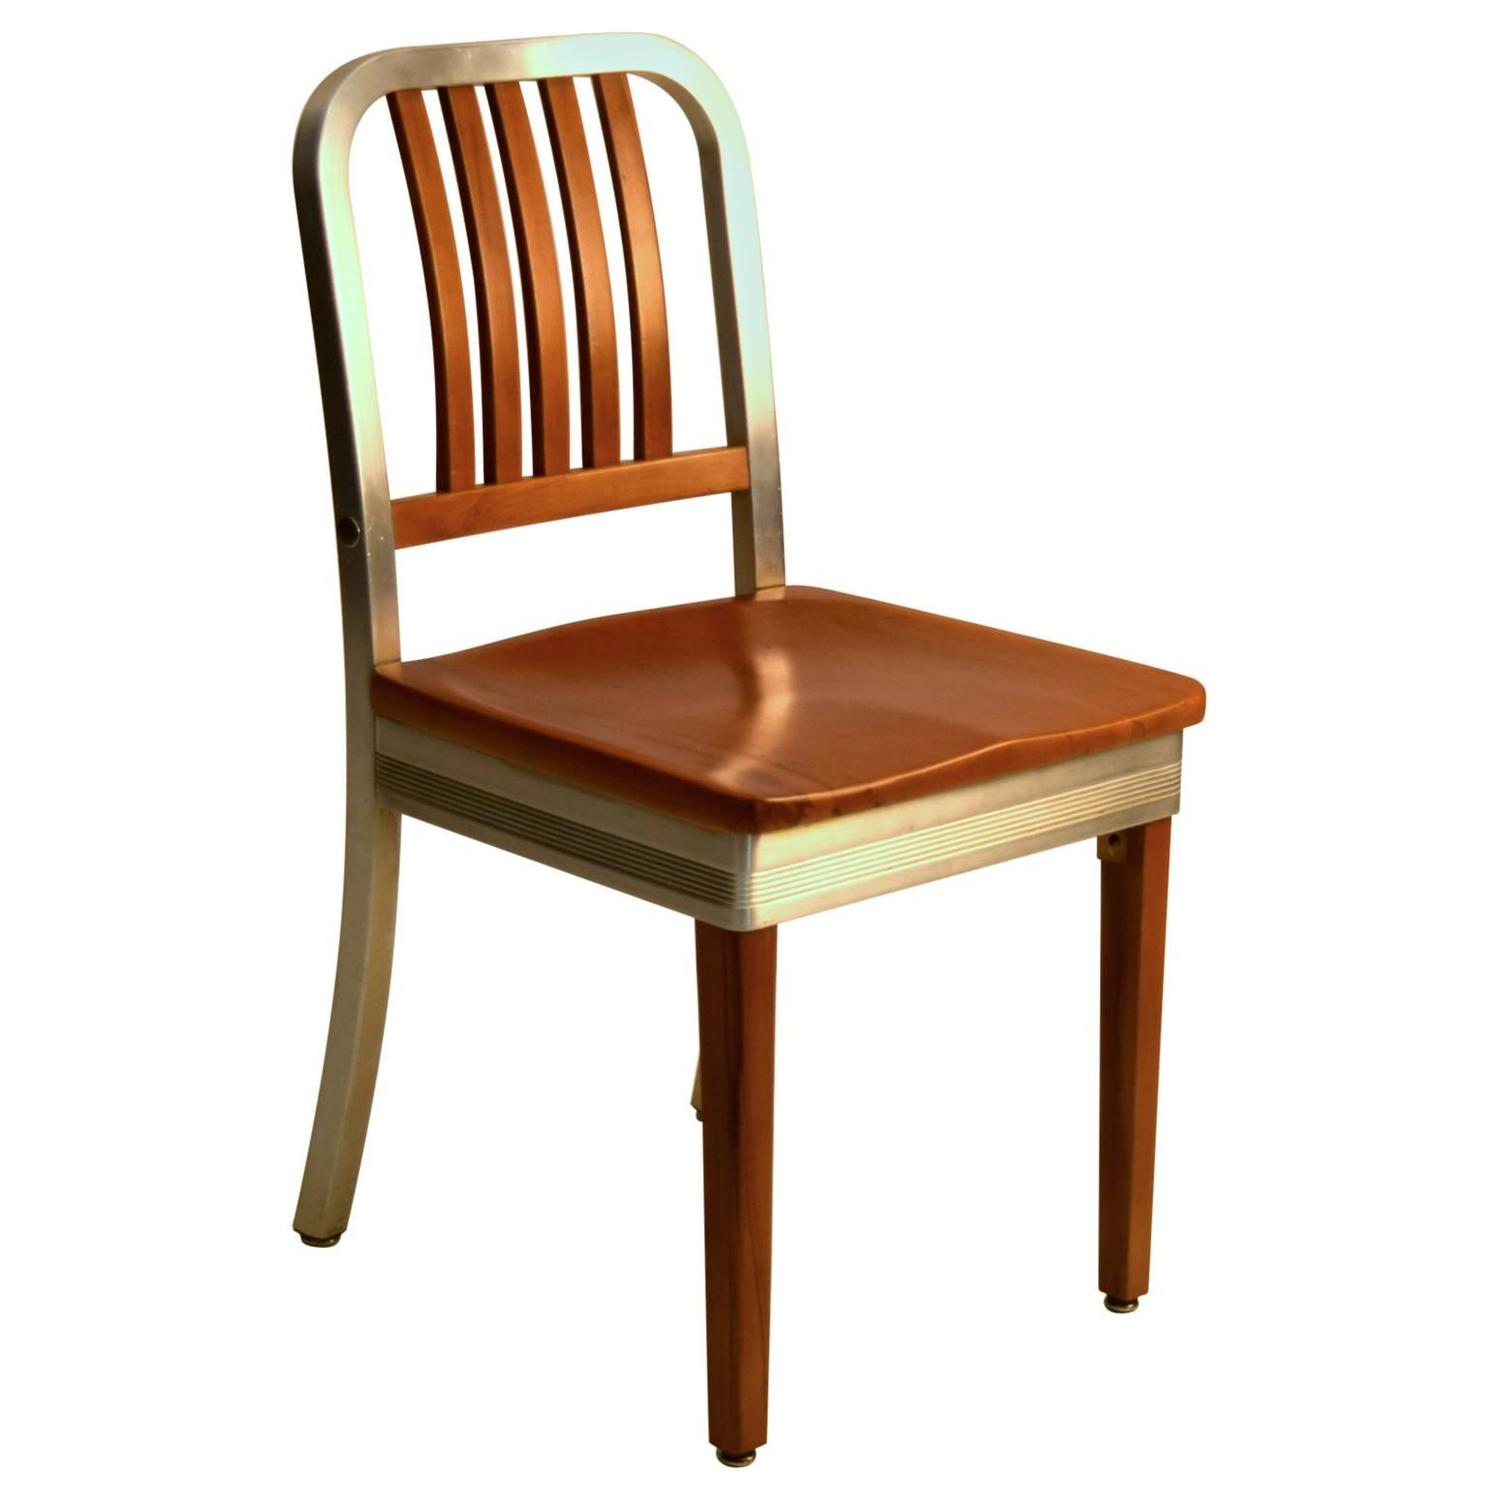 shaw walker chair comfy chairs for toddlers exquisite by sale at 1stdibs